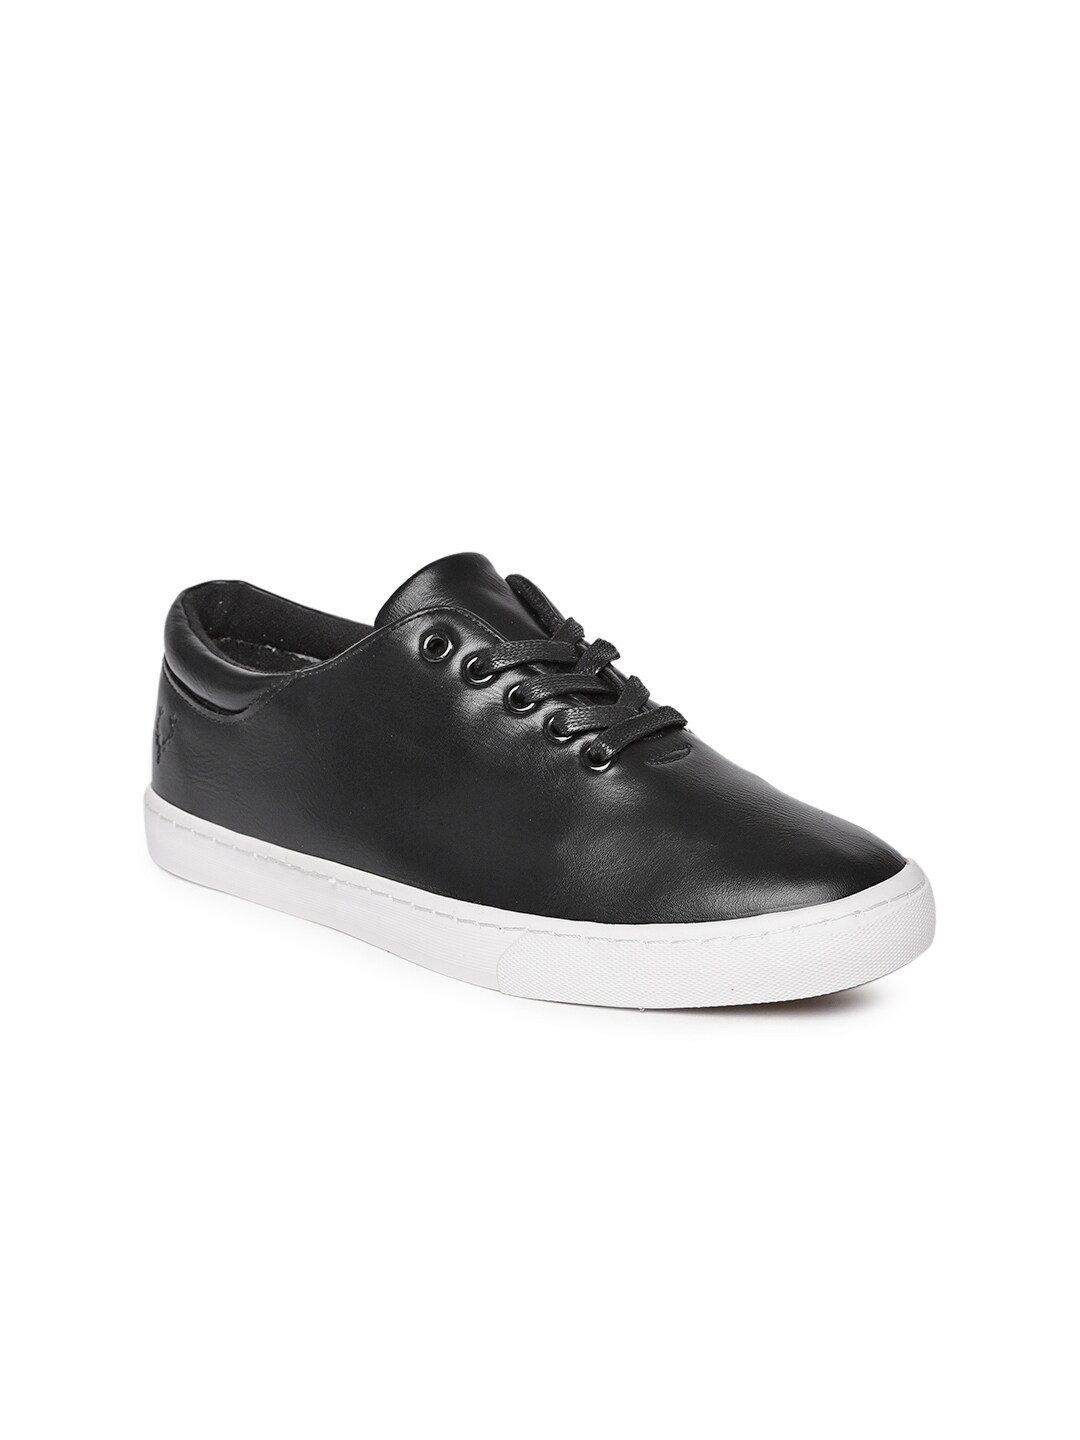 b6f9710b5 Casual Shoes For Women - Buy Women s Casual Shoes Online from Myntra